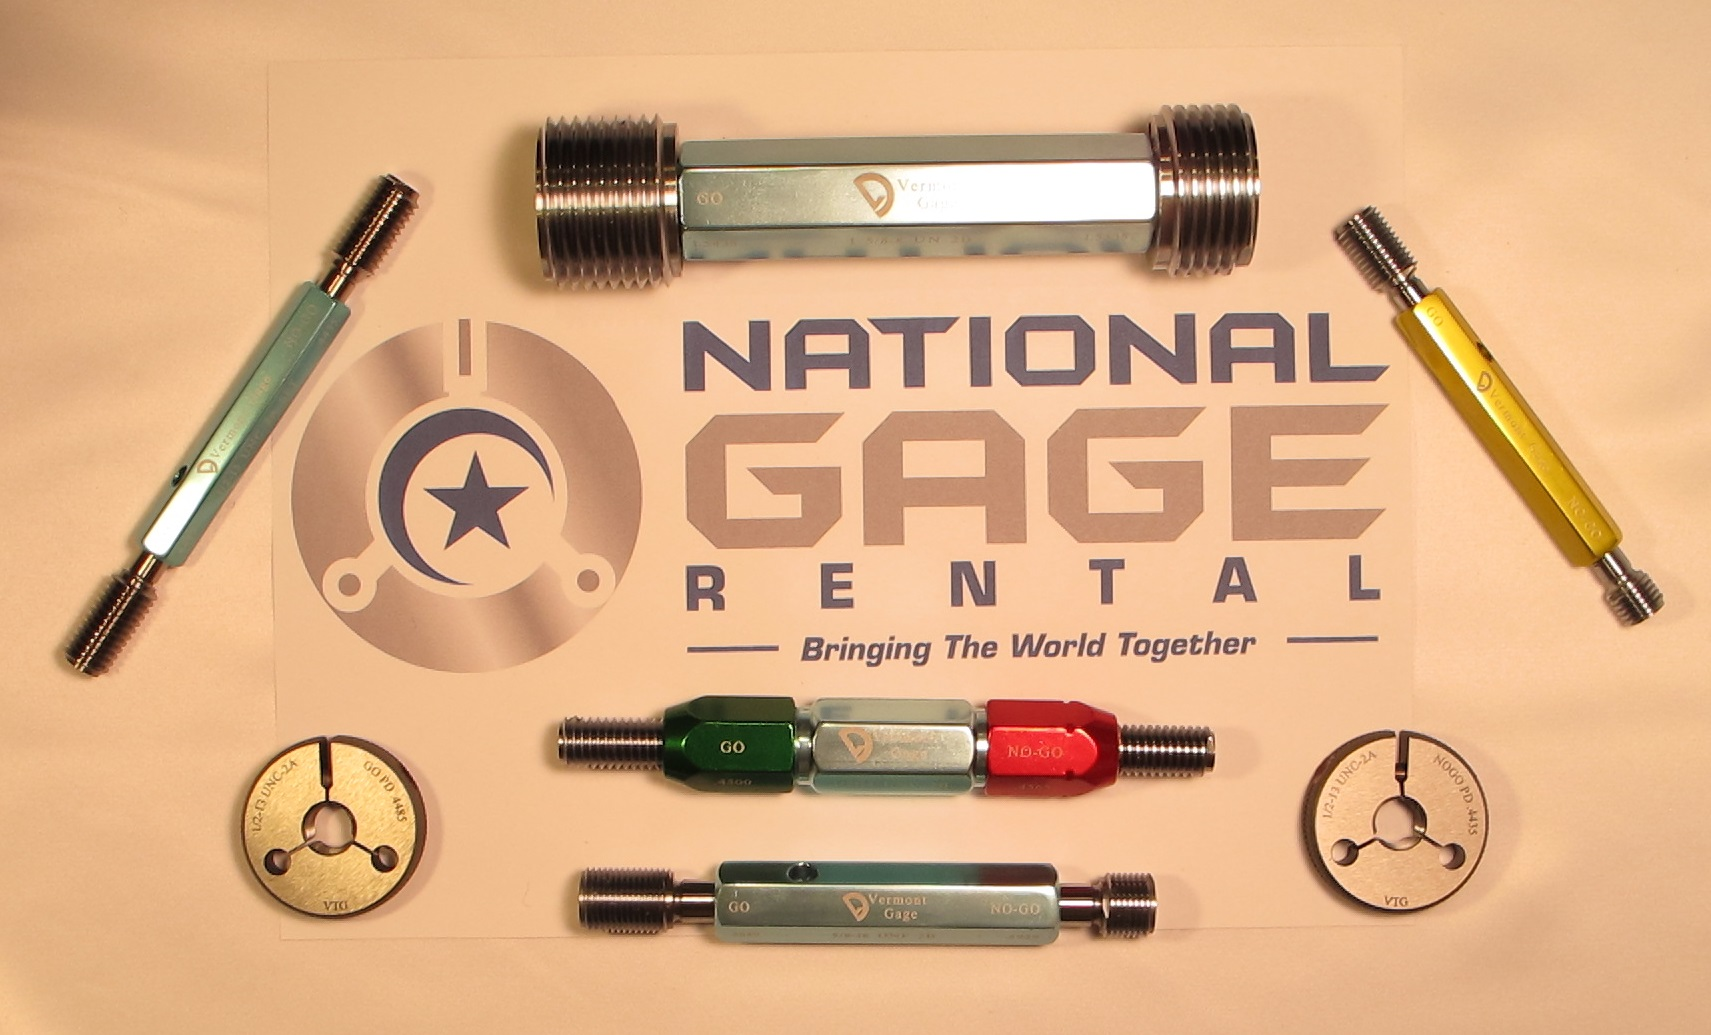 Welcome to National Gage Rental - National Gage Rental